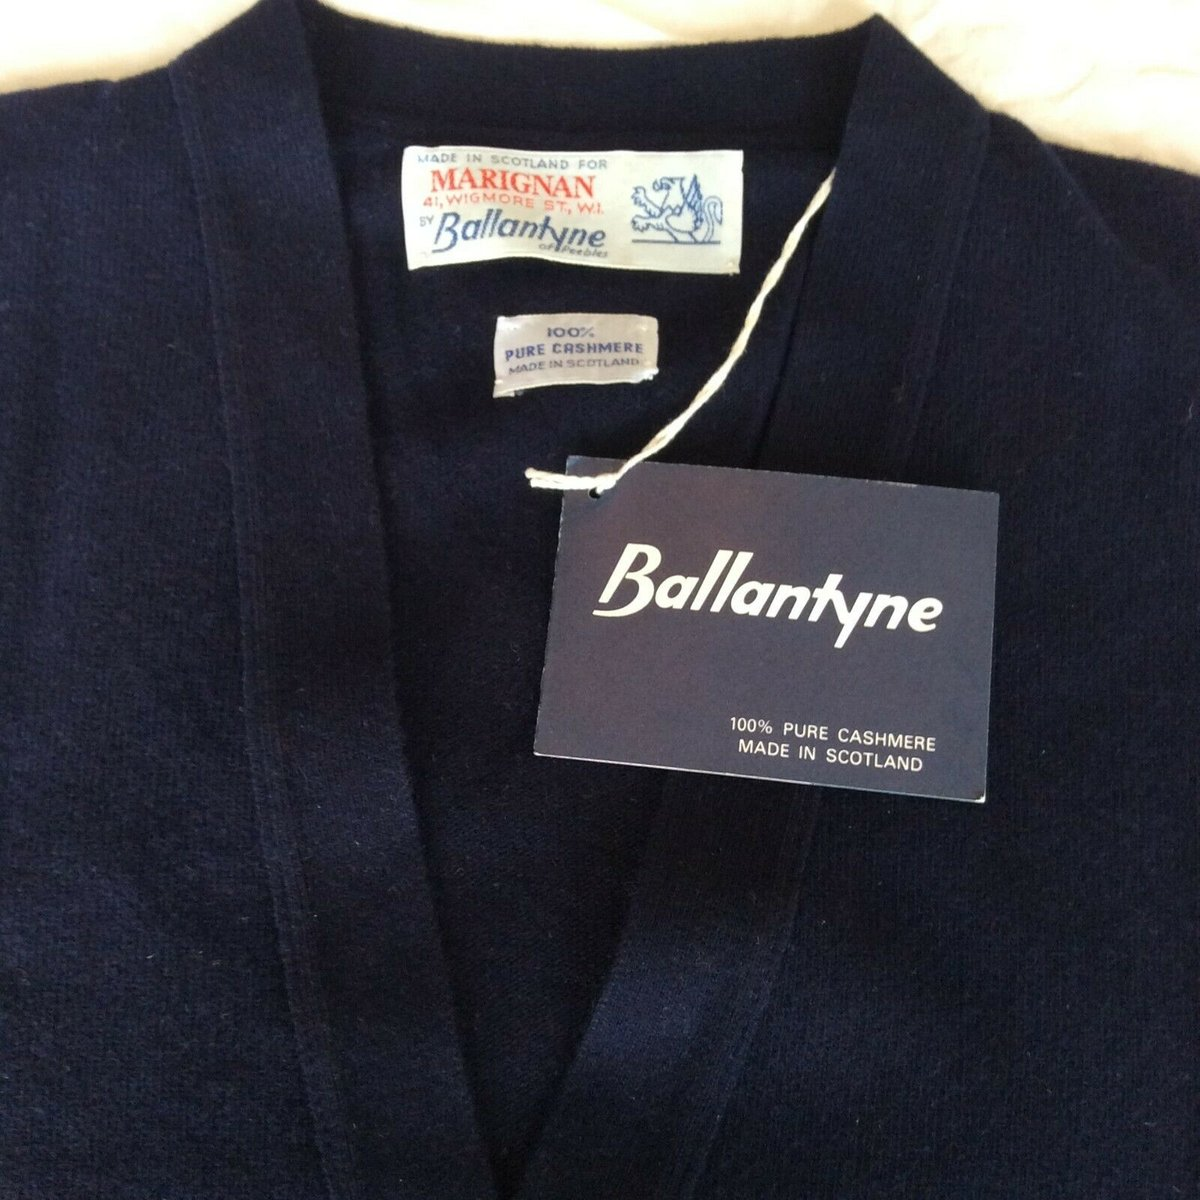 Ballantyne Vintage Men's Cashmere Navy Pullman Cardigan, New with tags Size 38 2.jpg